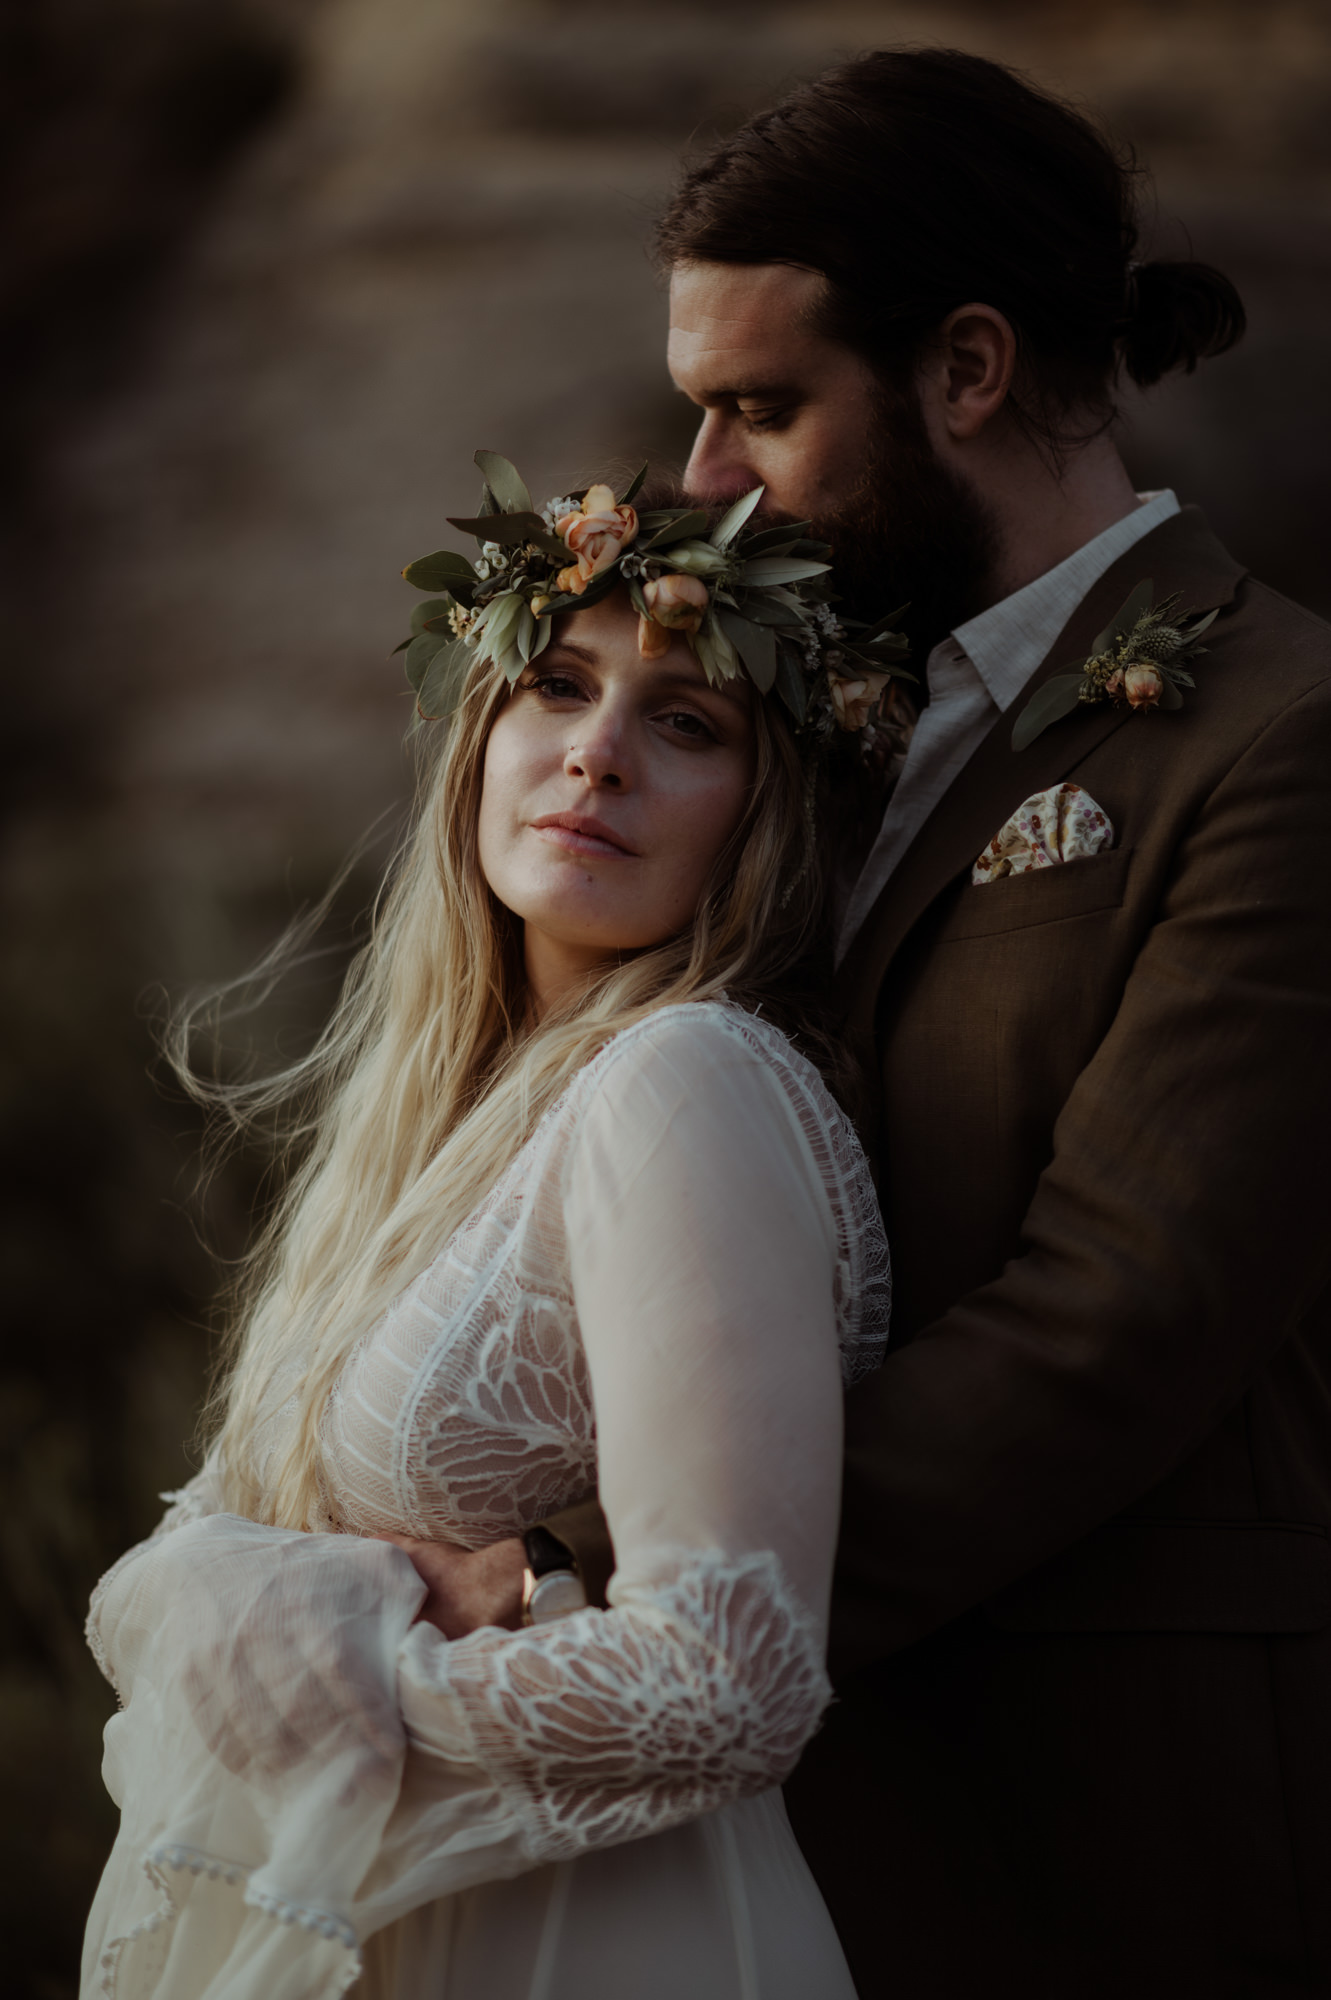 Groom holds bride with bay leaf and apricot rose crown - photographed by The Kitcheners - Scotland